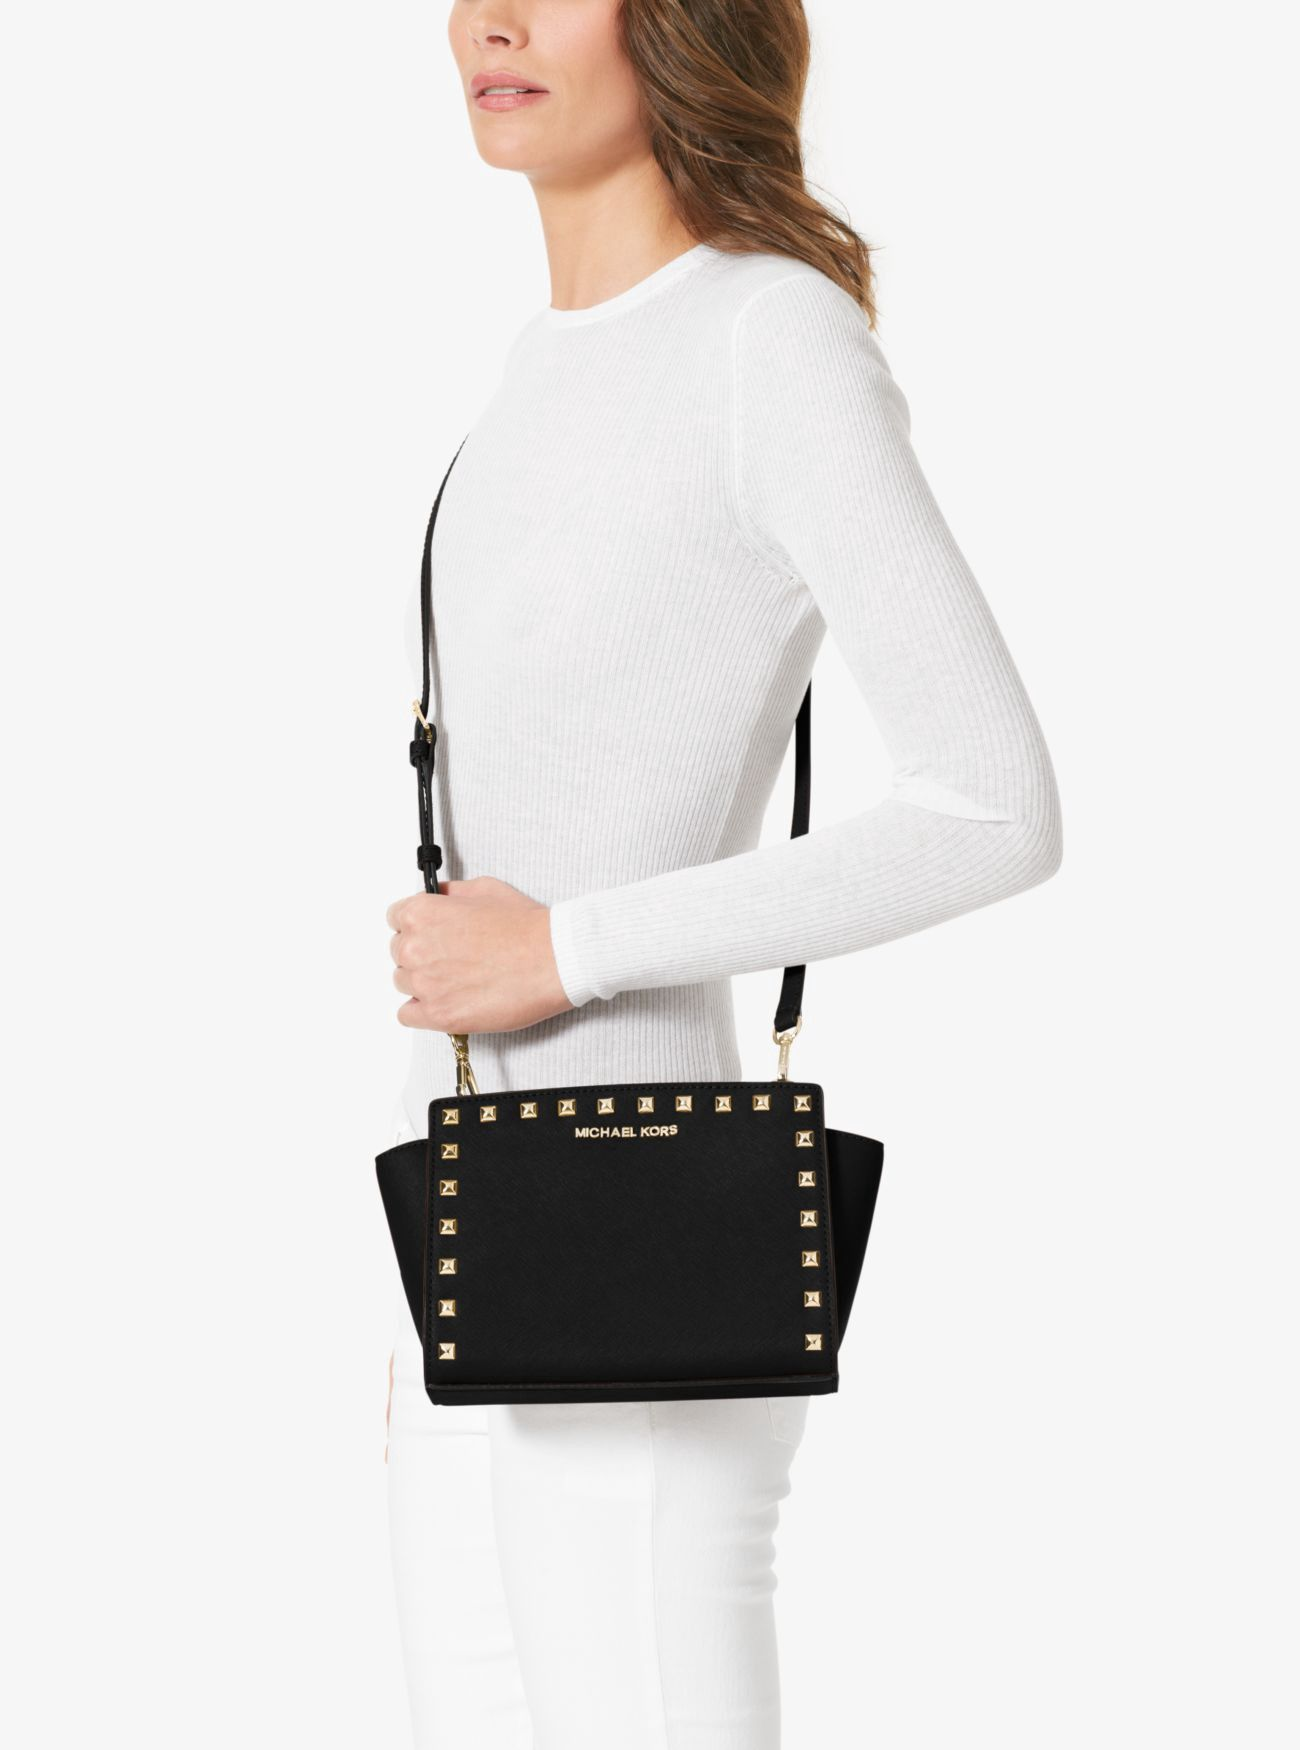 8a911dec12d2 MICHAEL KORS Selma Medium Studded Leather Messenger.  michaelkors  bags  shoulder  bags  leather  polyester  lining